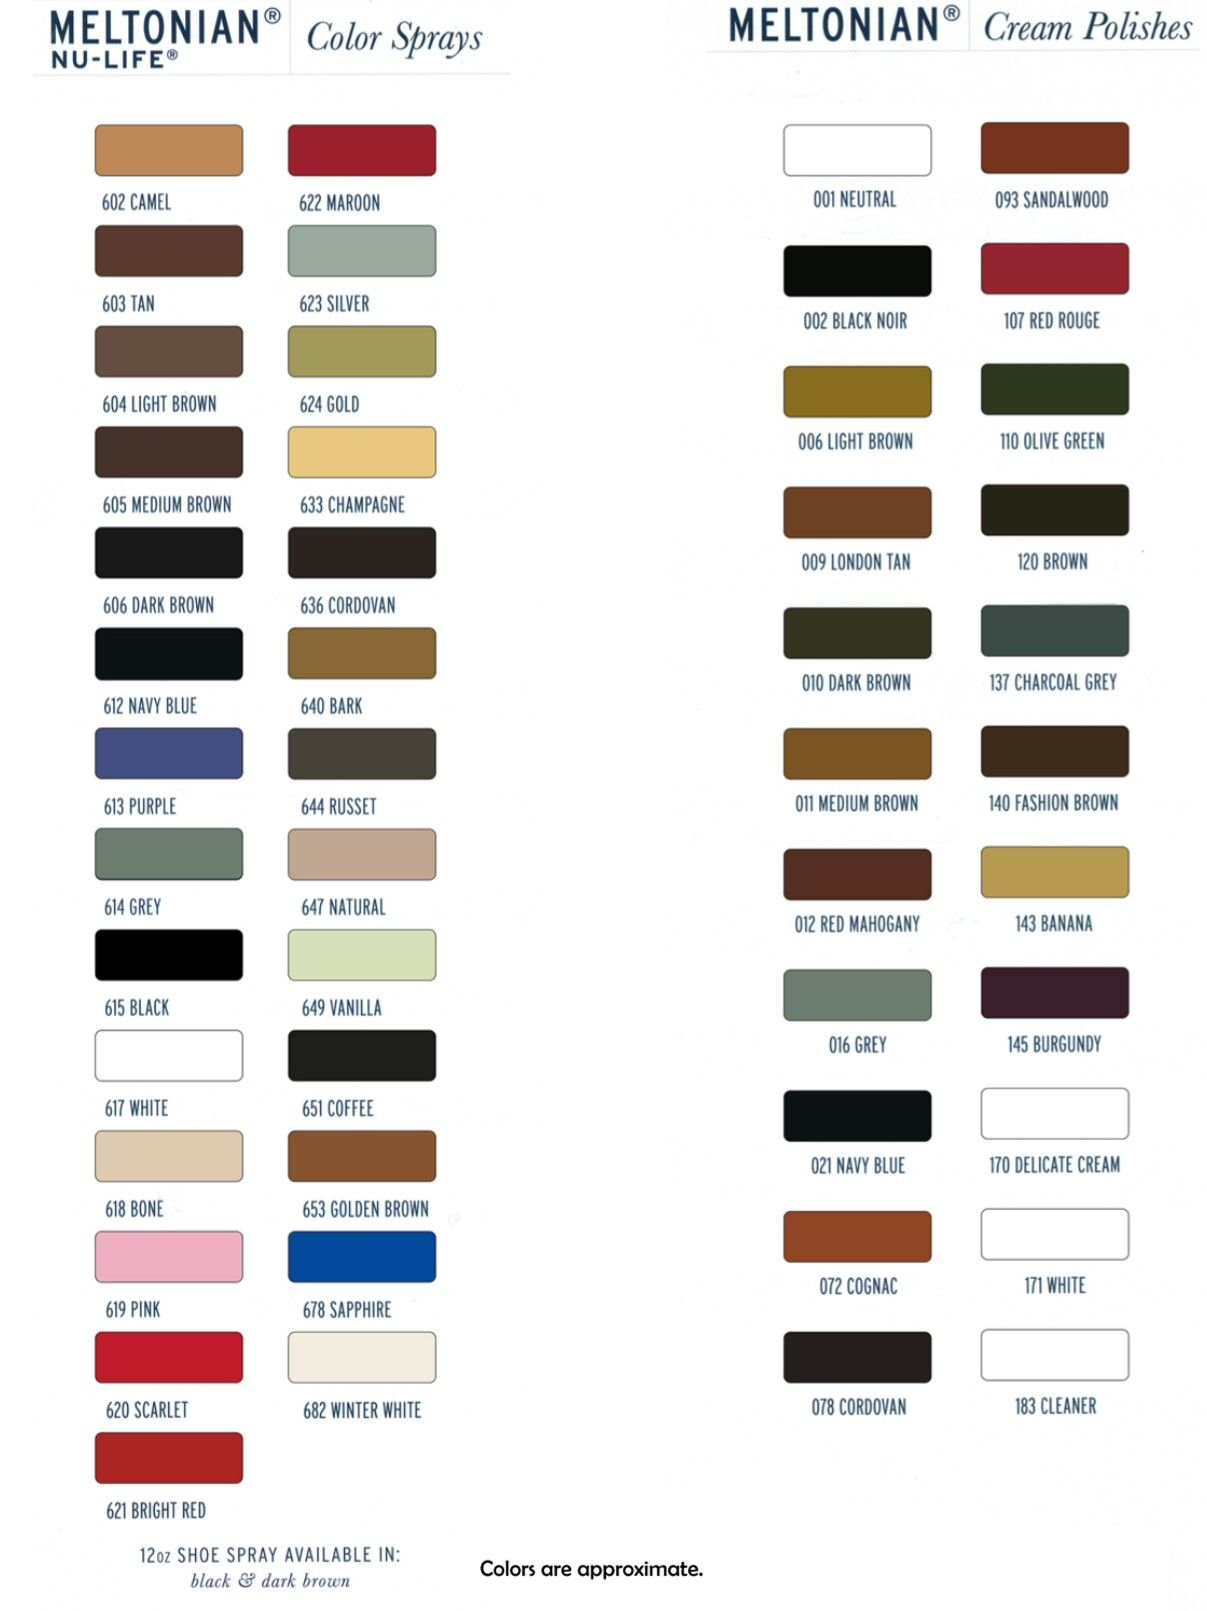 Meltonian color chart image collections chart design ideas meltonian color chart shoemakingsupplies pinterest colour chart meltonian color chart geenschuldenfo image collections geenschuldenfo Gallery